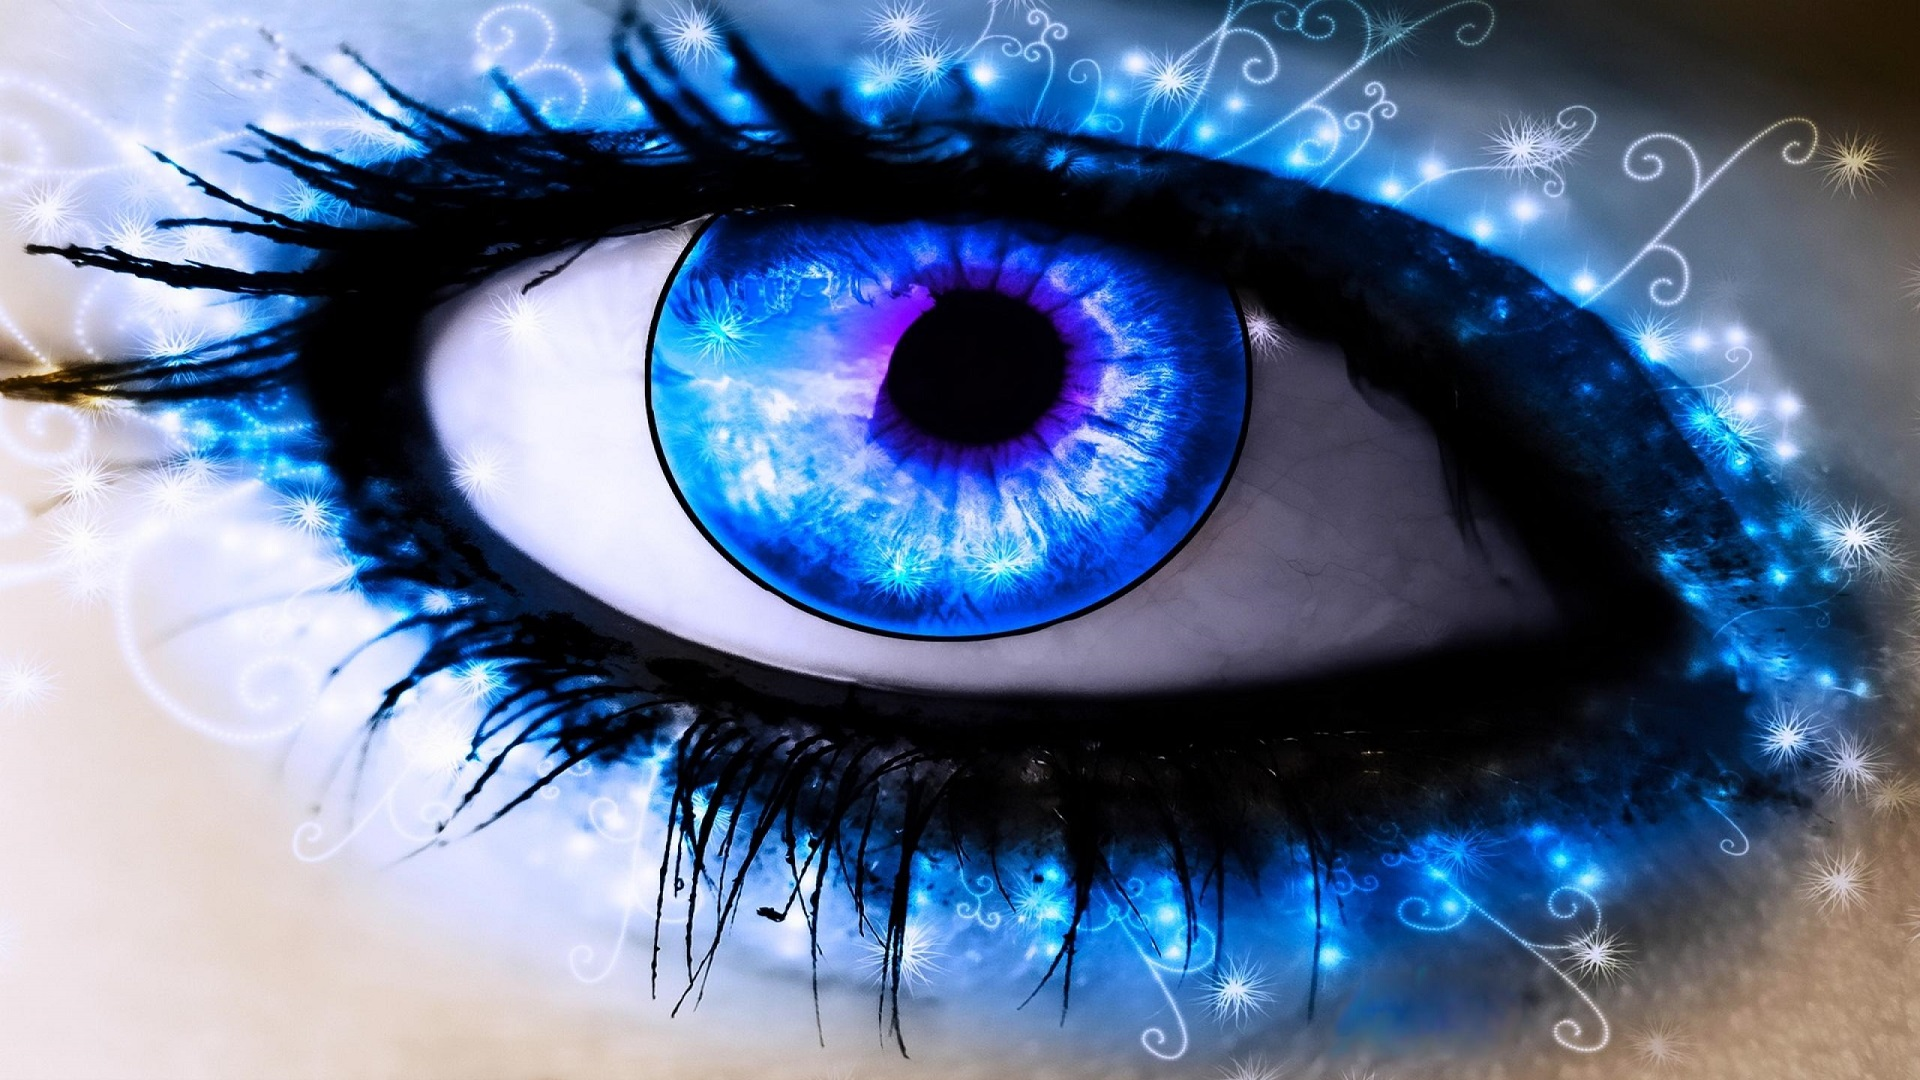 Beautiful Eyes Art 3D amp Abstract HD Wallpapers 1920x1080